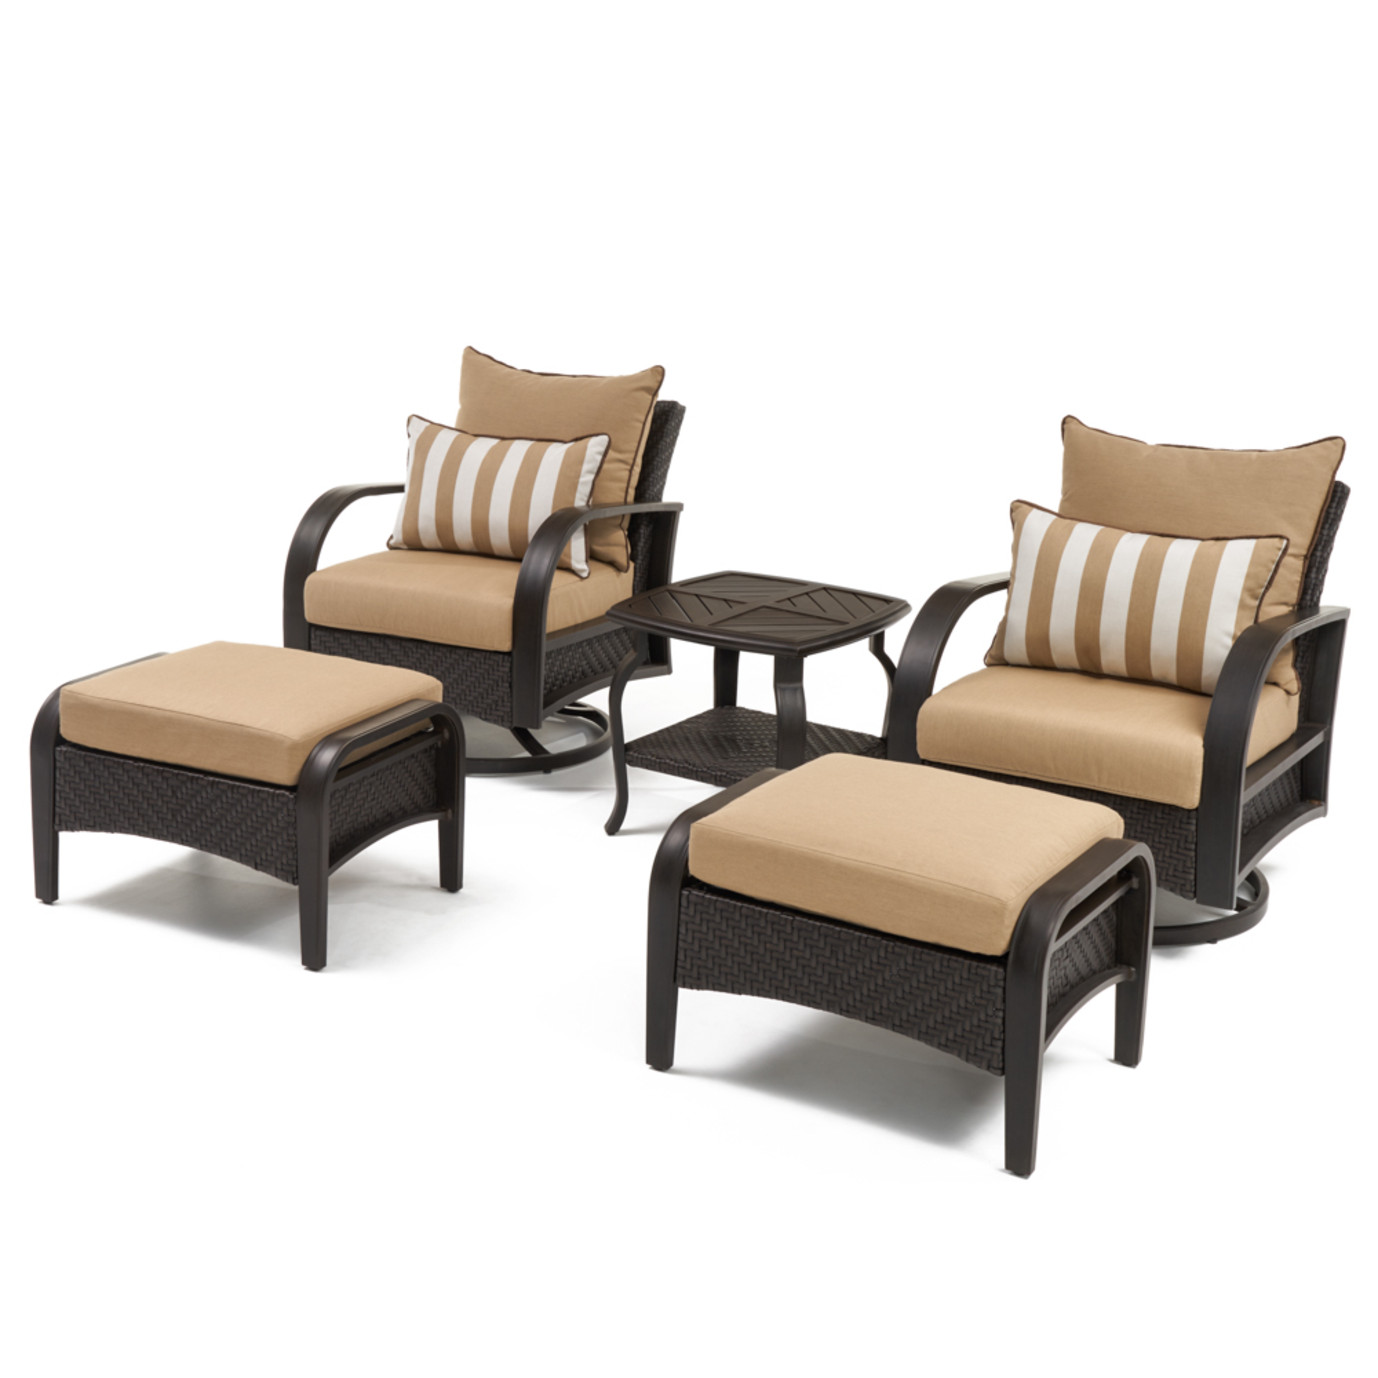 Barcelo™ 5pc Motion Club & Ottoman Set - Maxim Beige